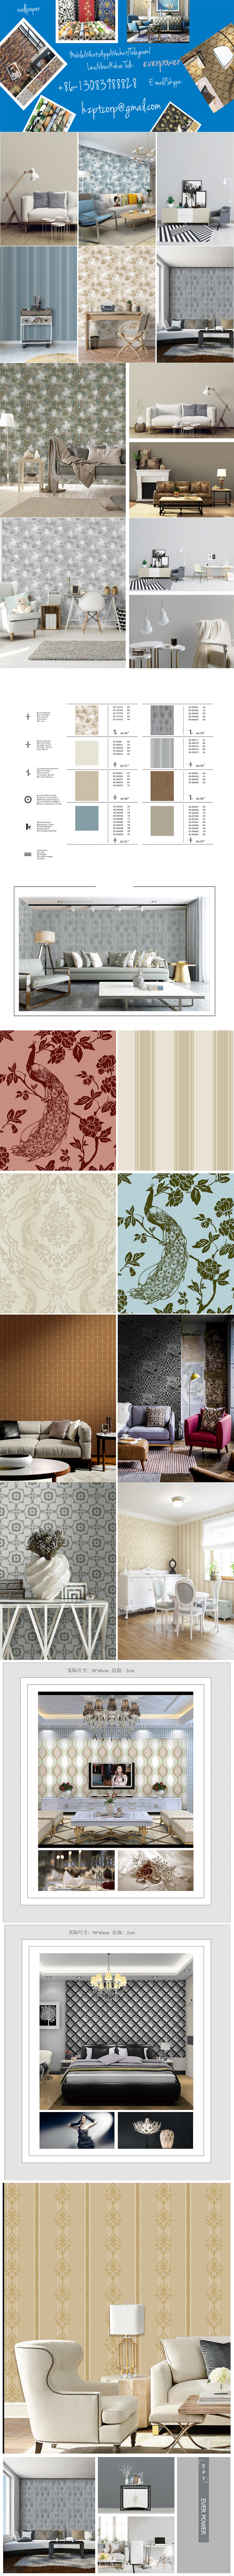 European  in Lviv Ukraine  Court Luxury Self-Adhesive Non-Woven Wallpaper High-Grade Fine Embossing Sticker Free Wallpaper